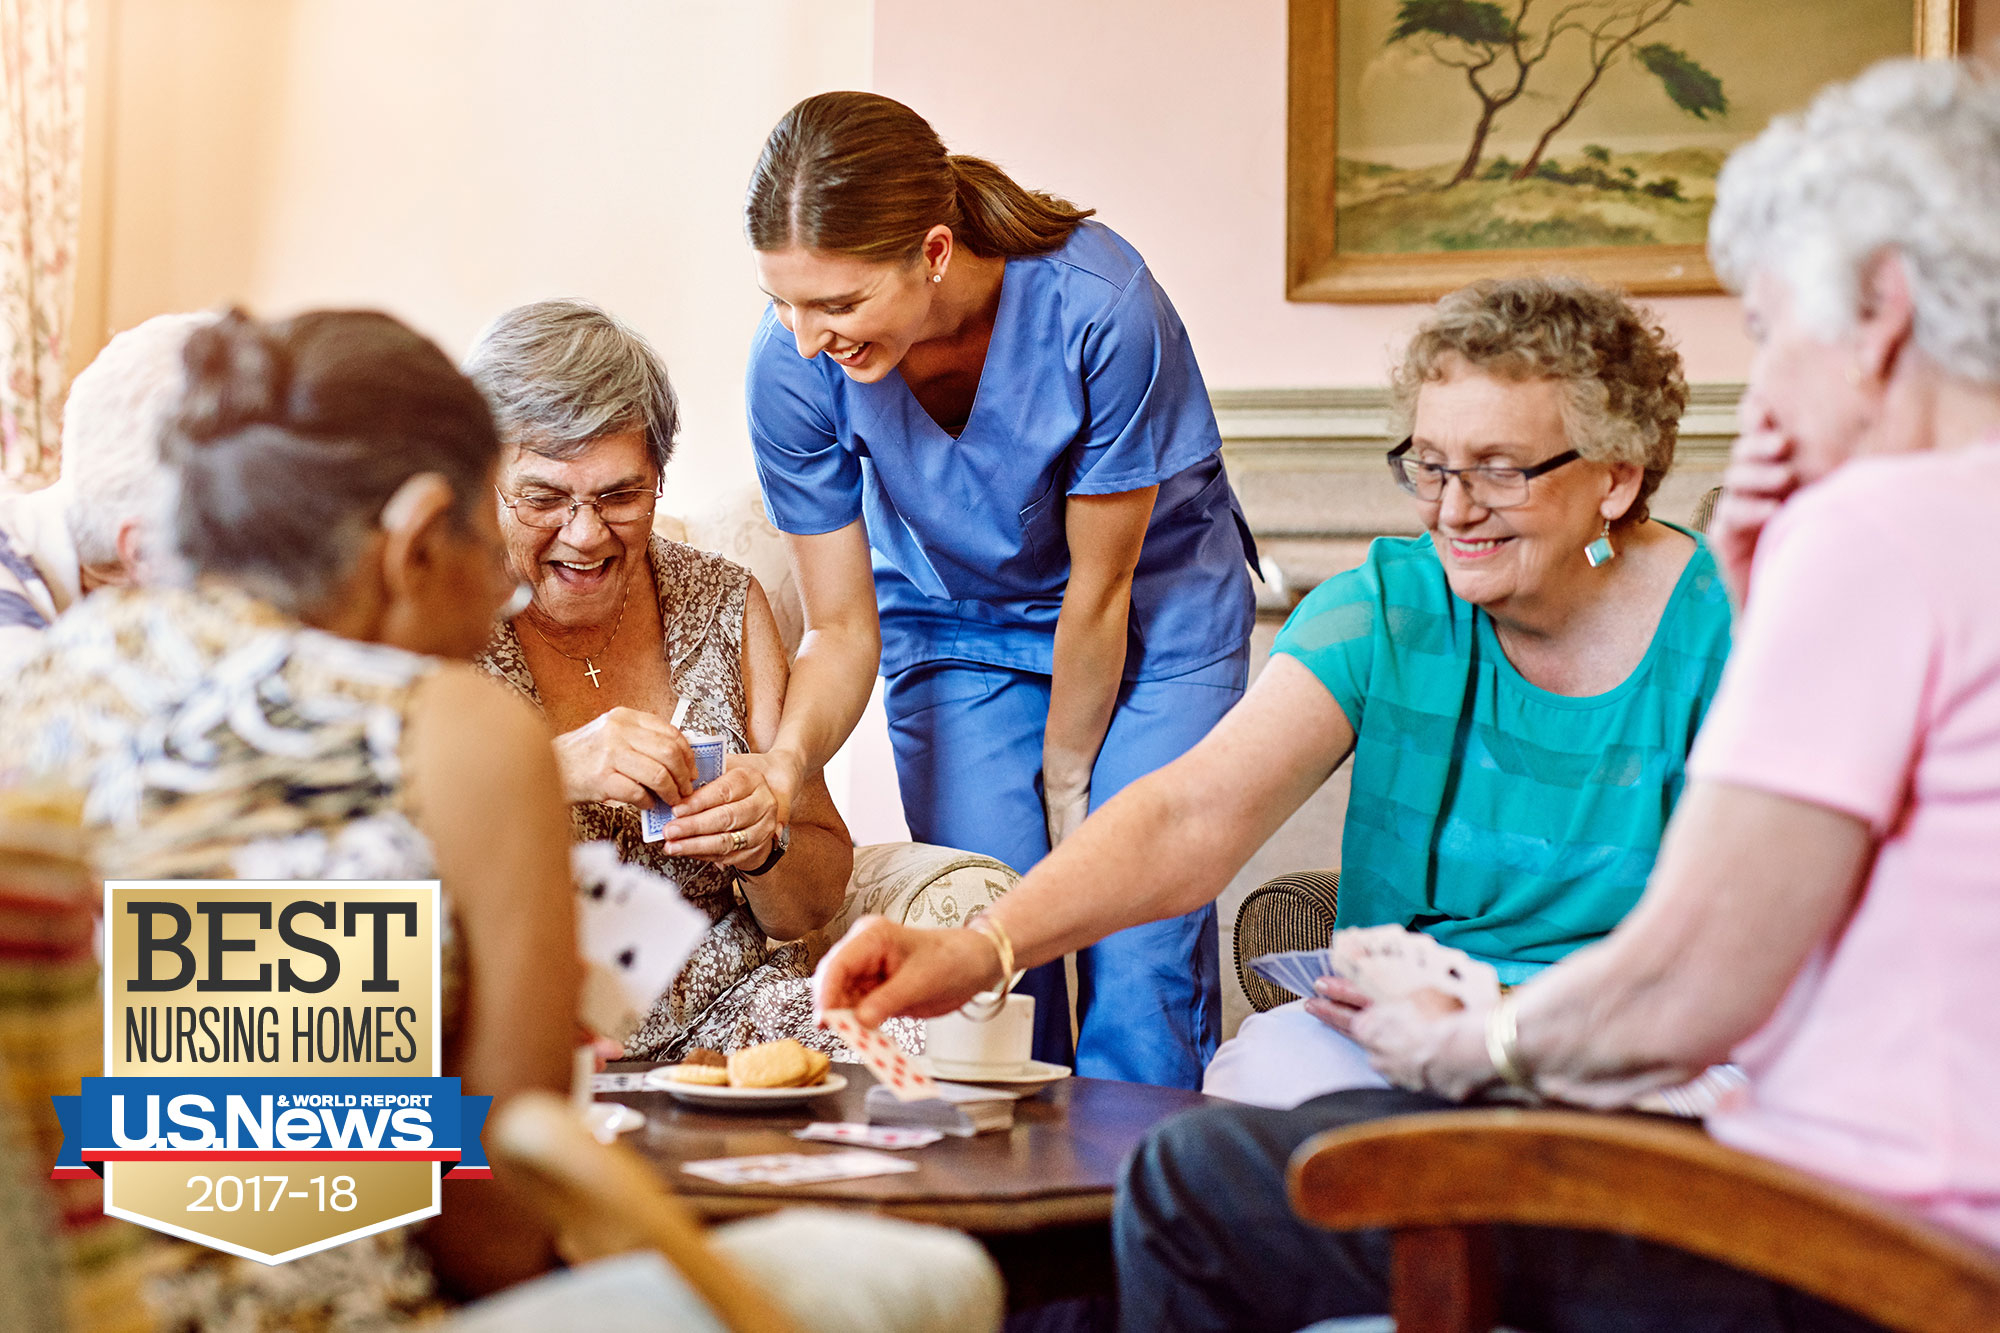 Must Ask Questions When You Re Choosing A Nursing Home Best Nursing Homes Us News